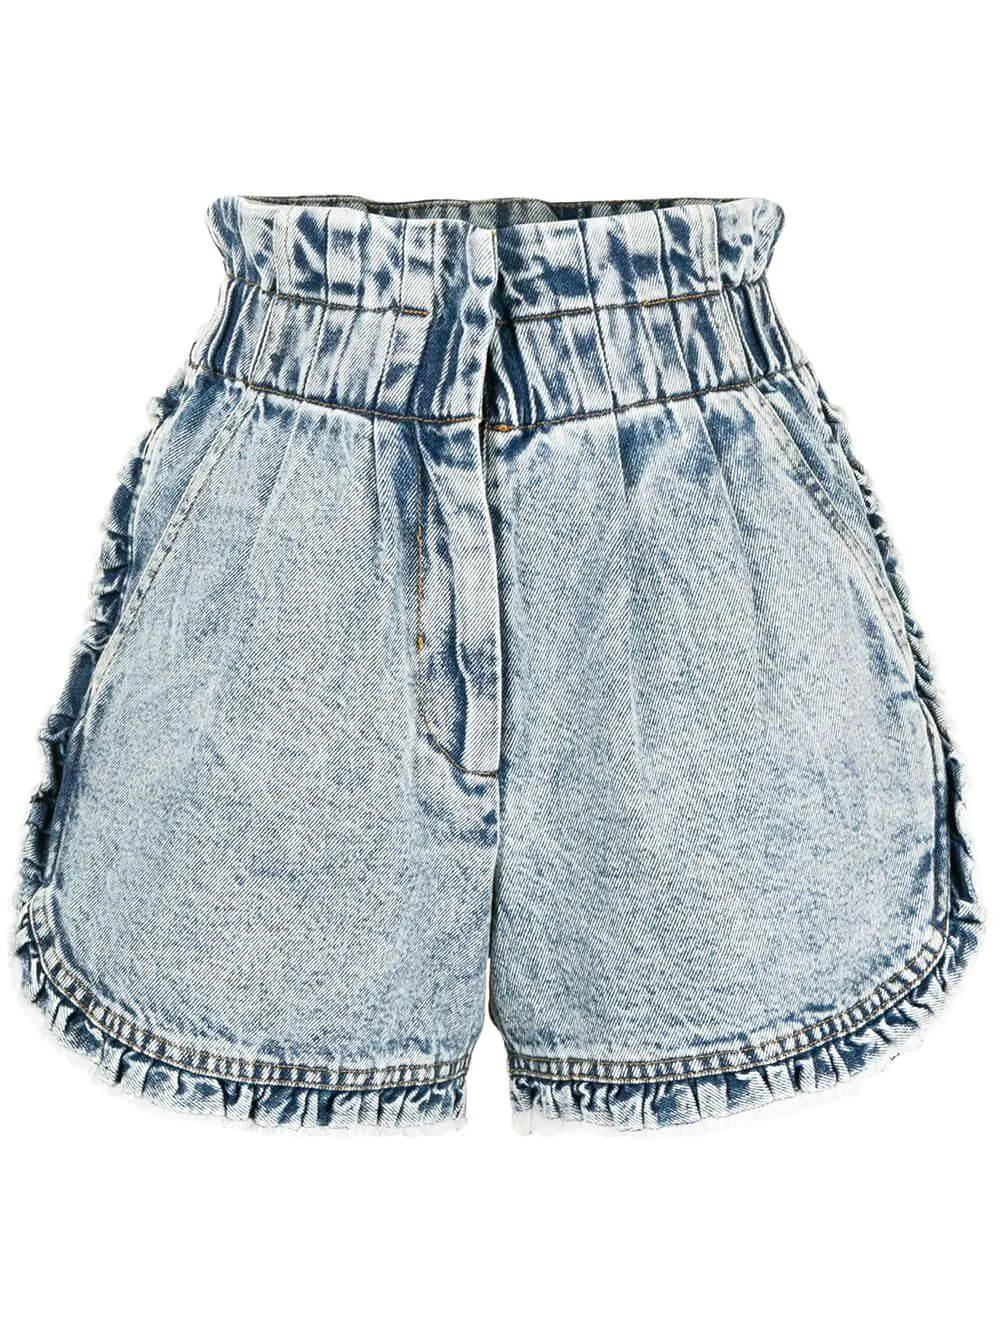 Dax Acid Wash Denim Shorts